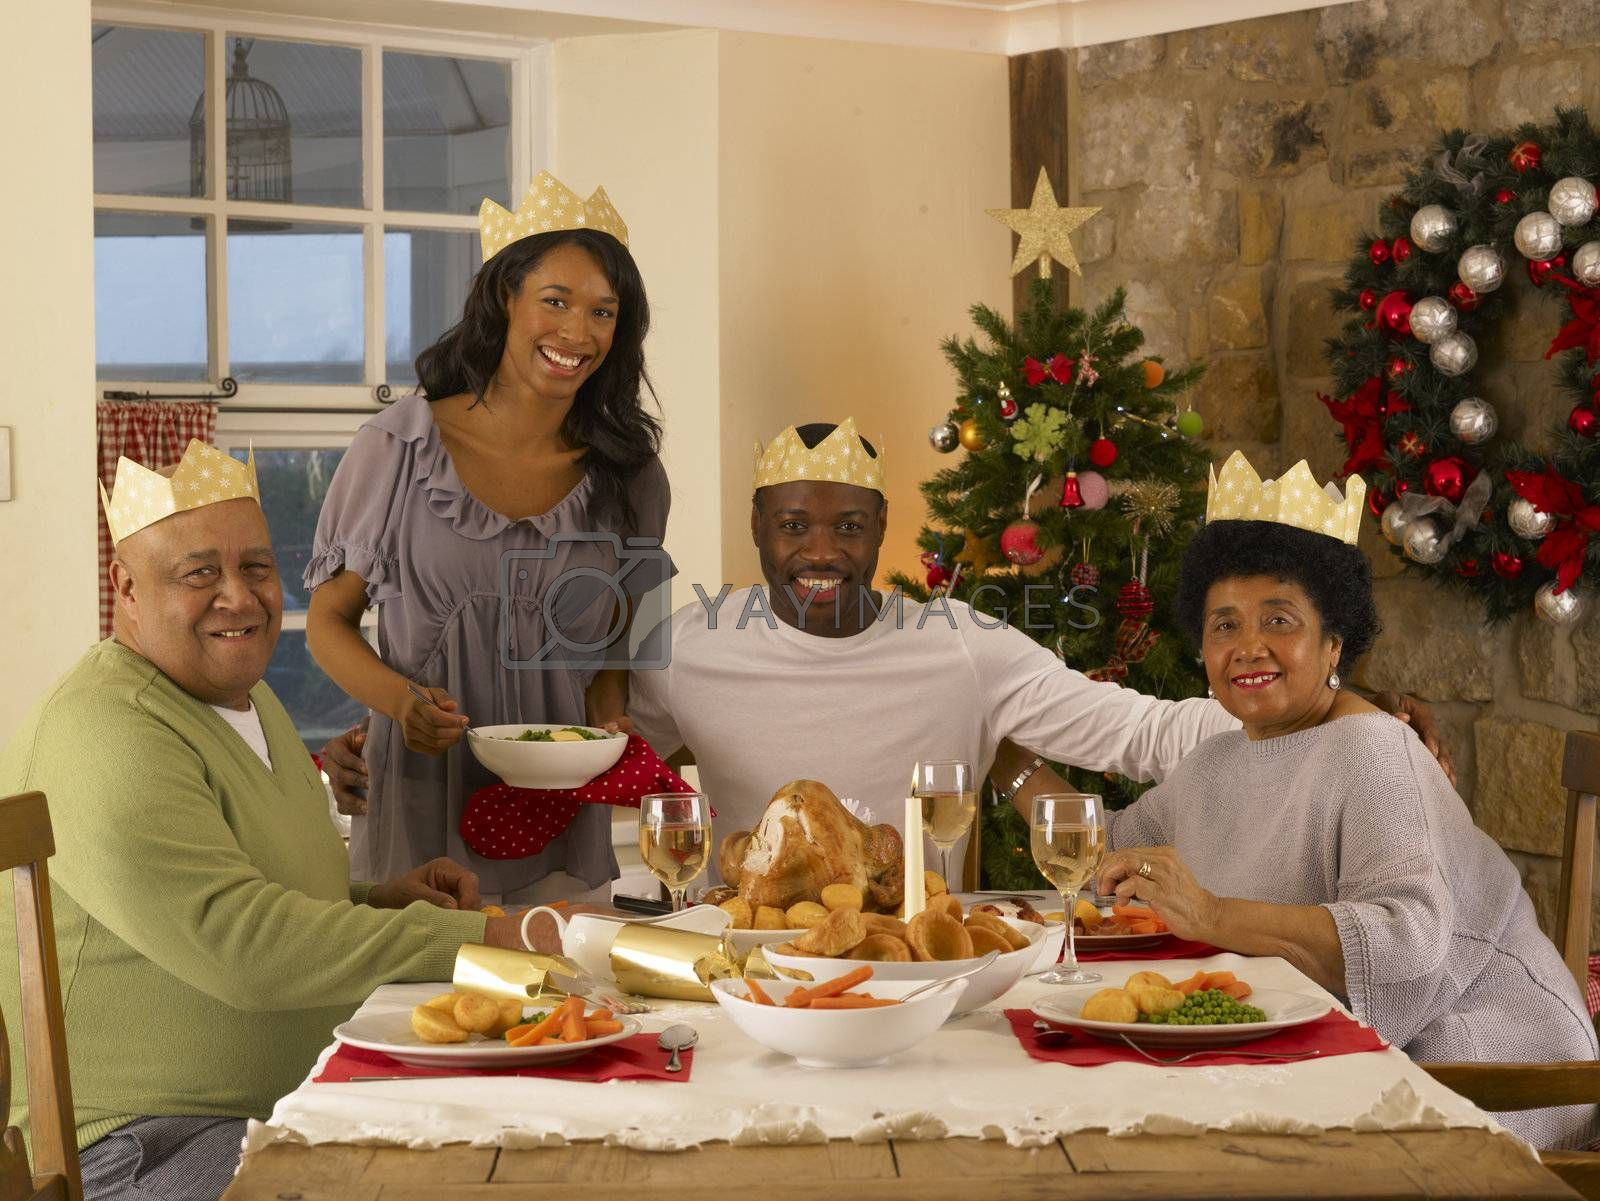 Royalty free image of Adult African American family having Christmas dinner by omg_images